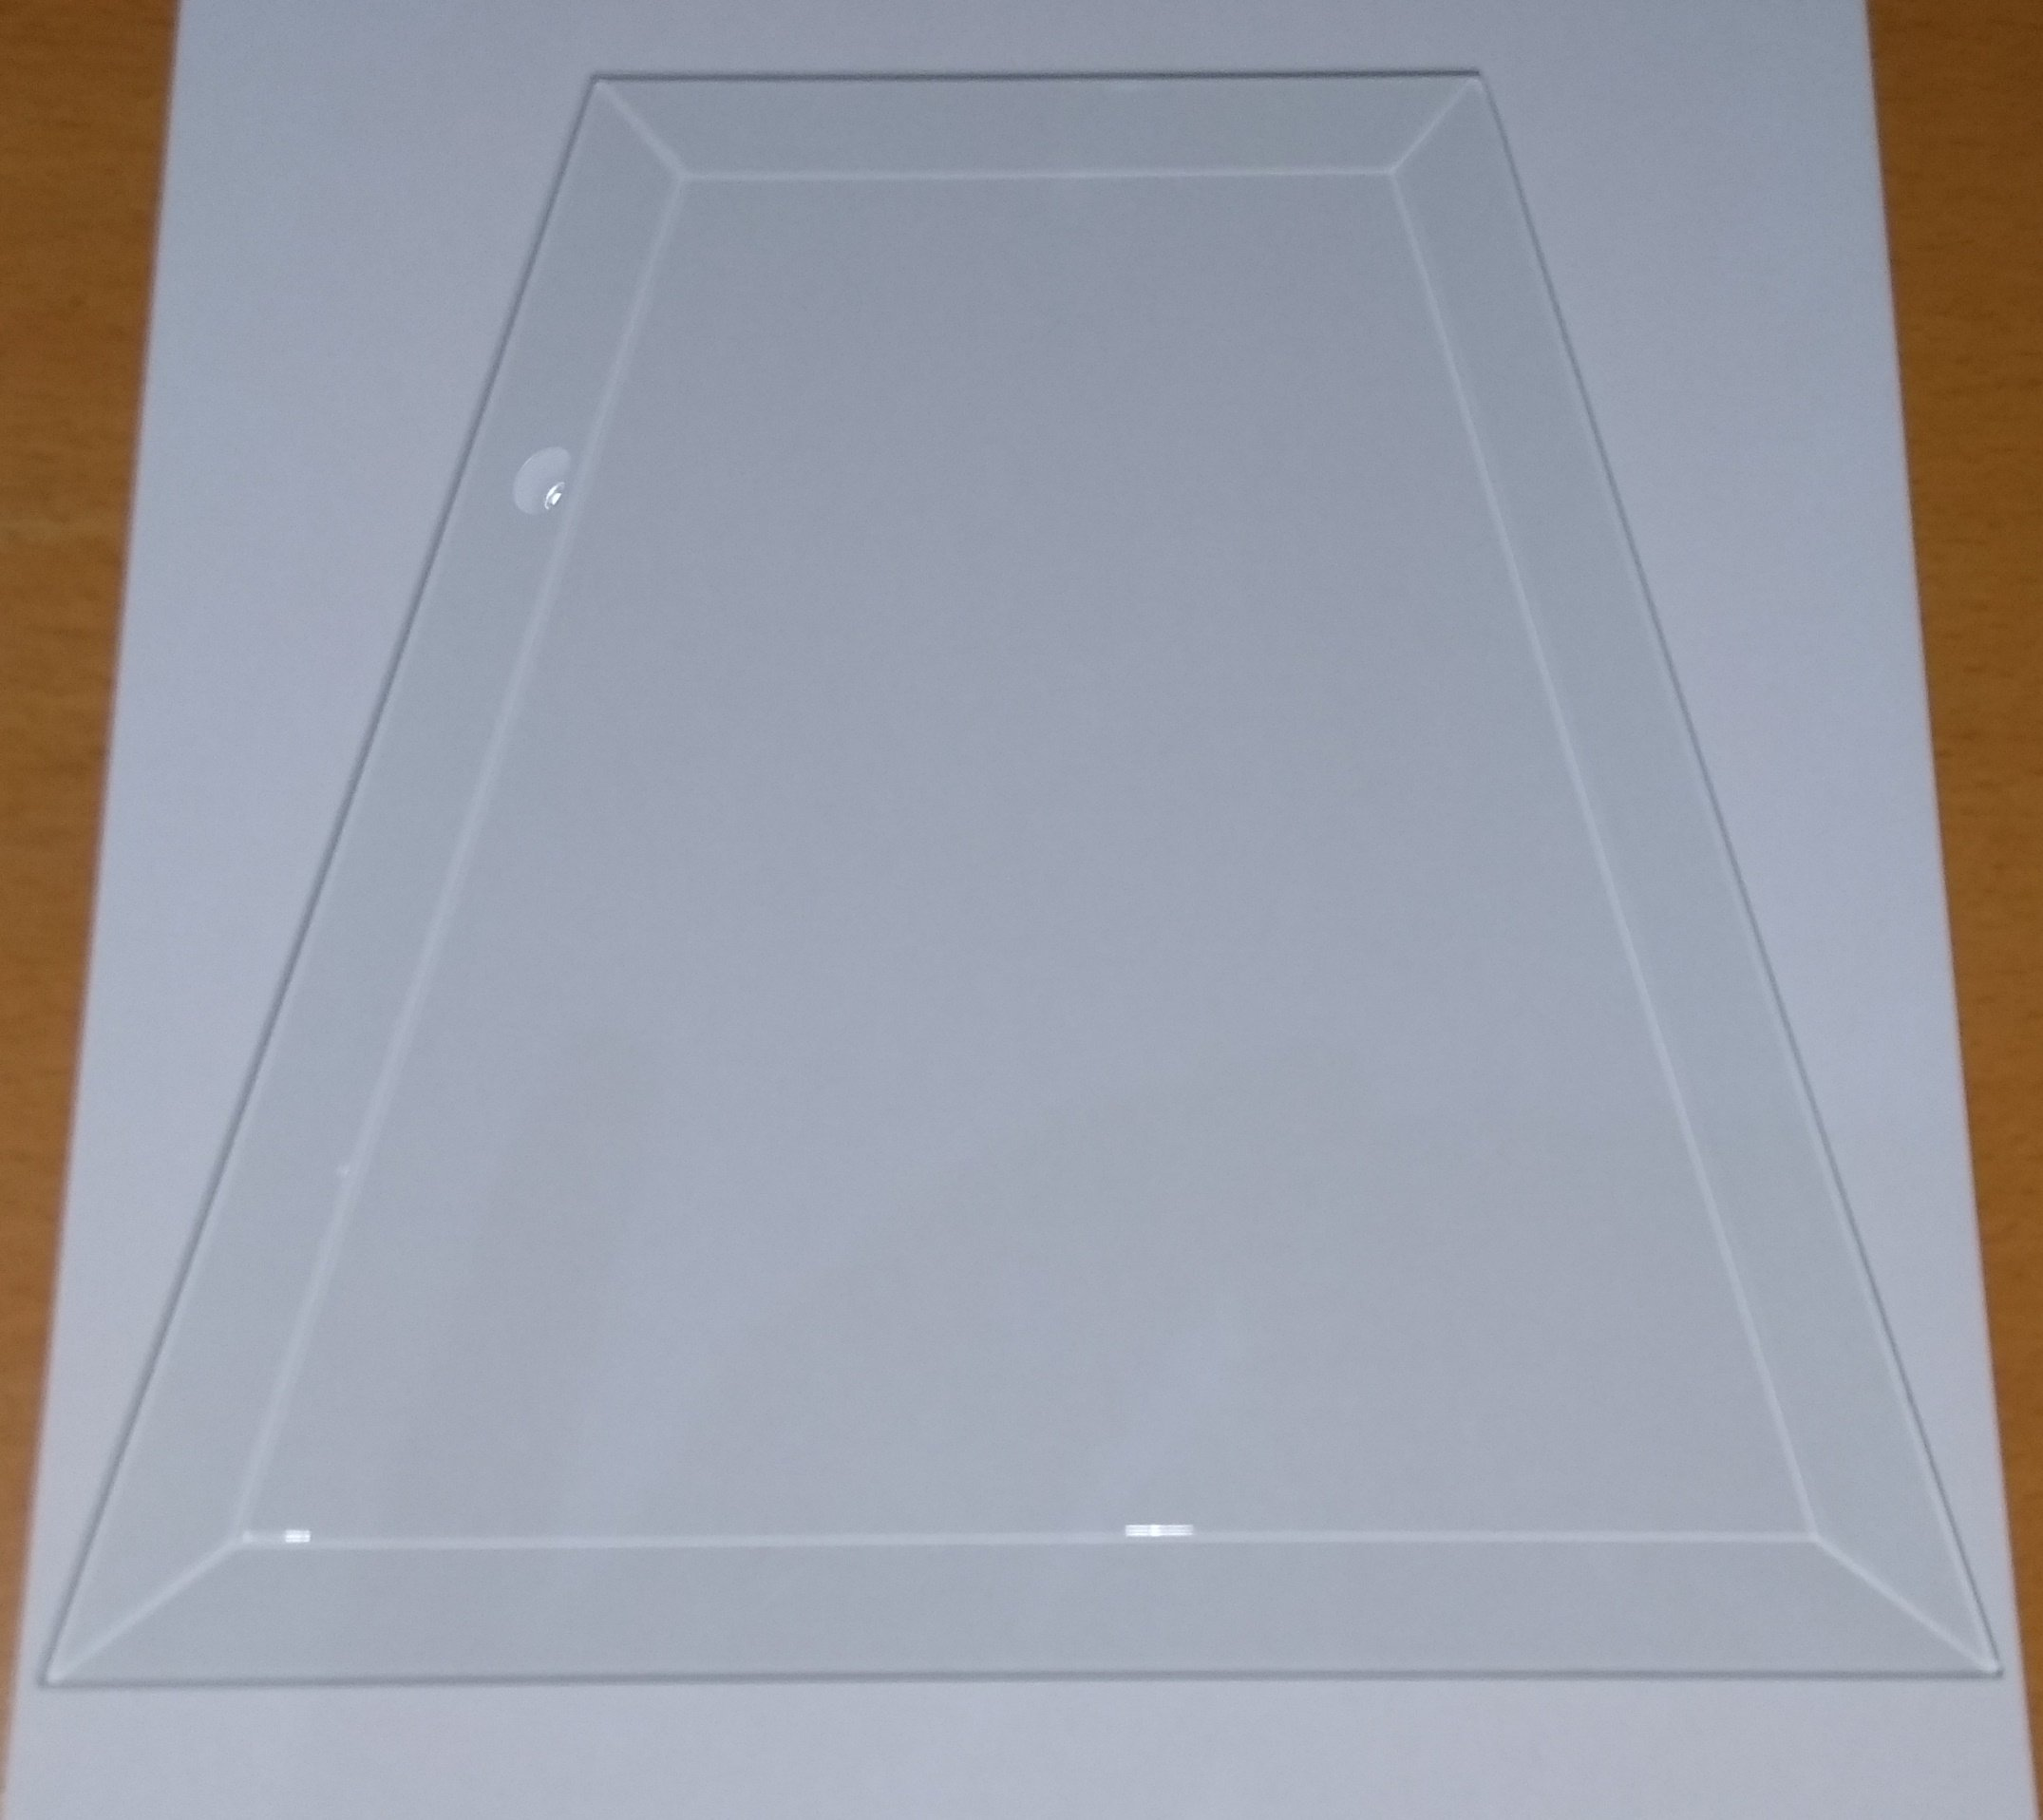 Tempered Bevelled Glass Panes for Outdoor Gaslights FBG300-1 Pane